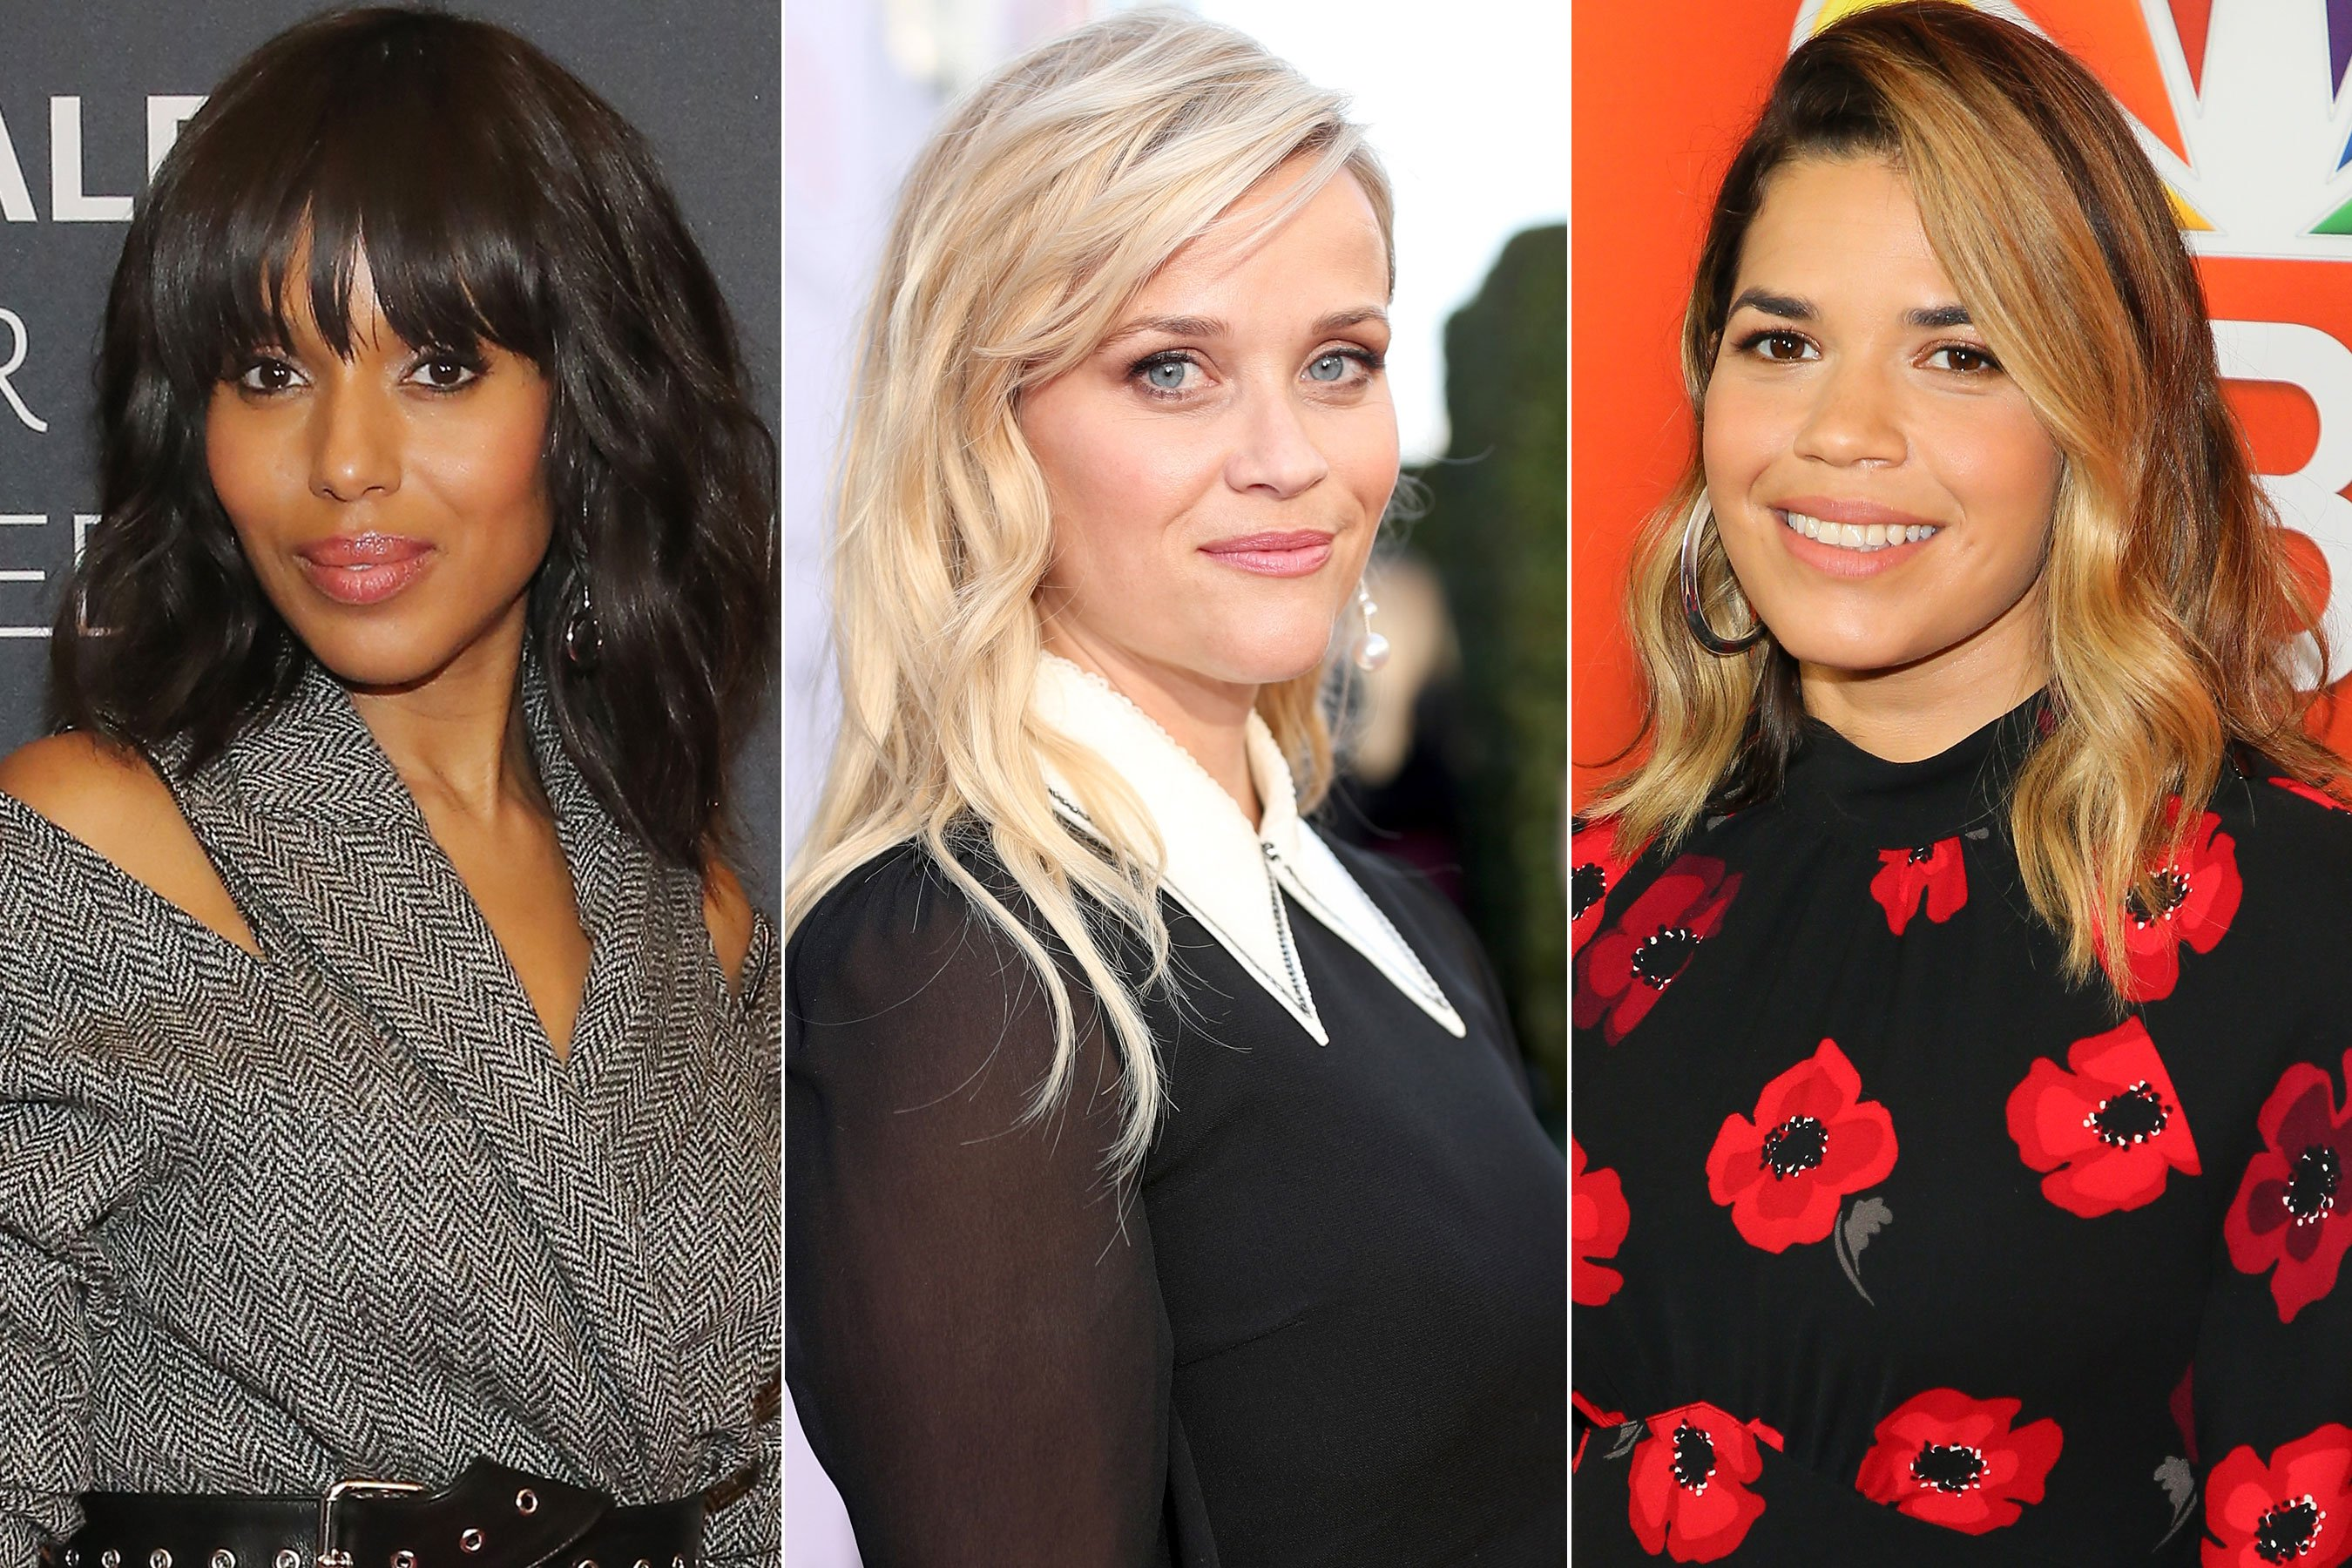 Time's Up initiative promises to fight sexual harassment with top Hollywood stars